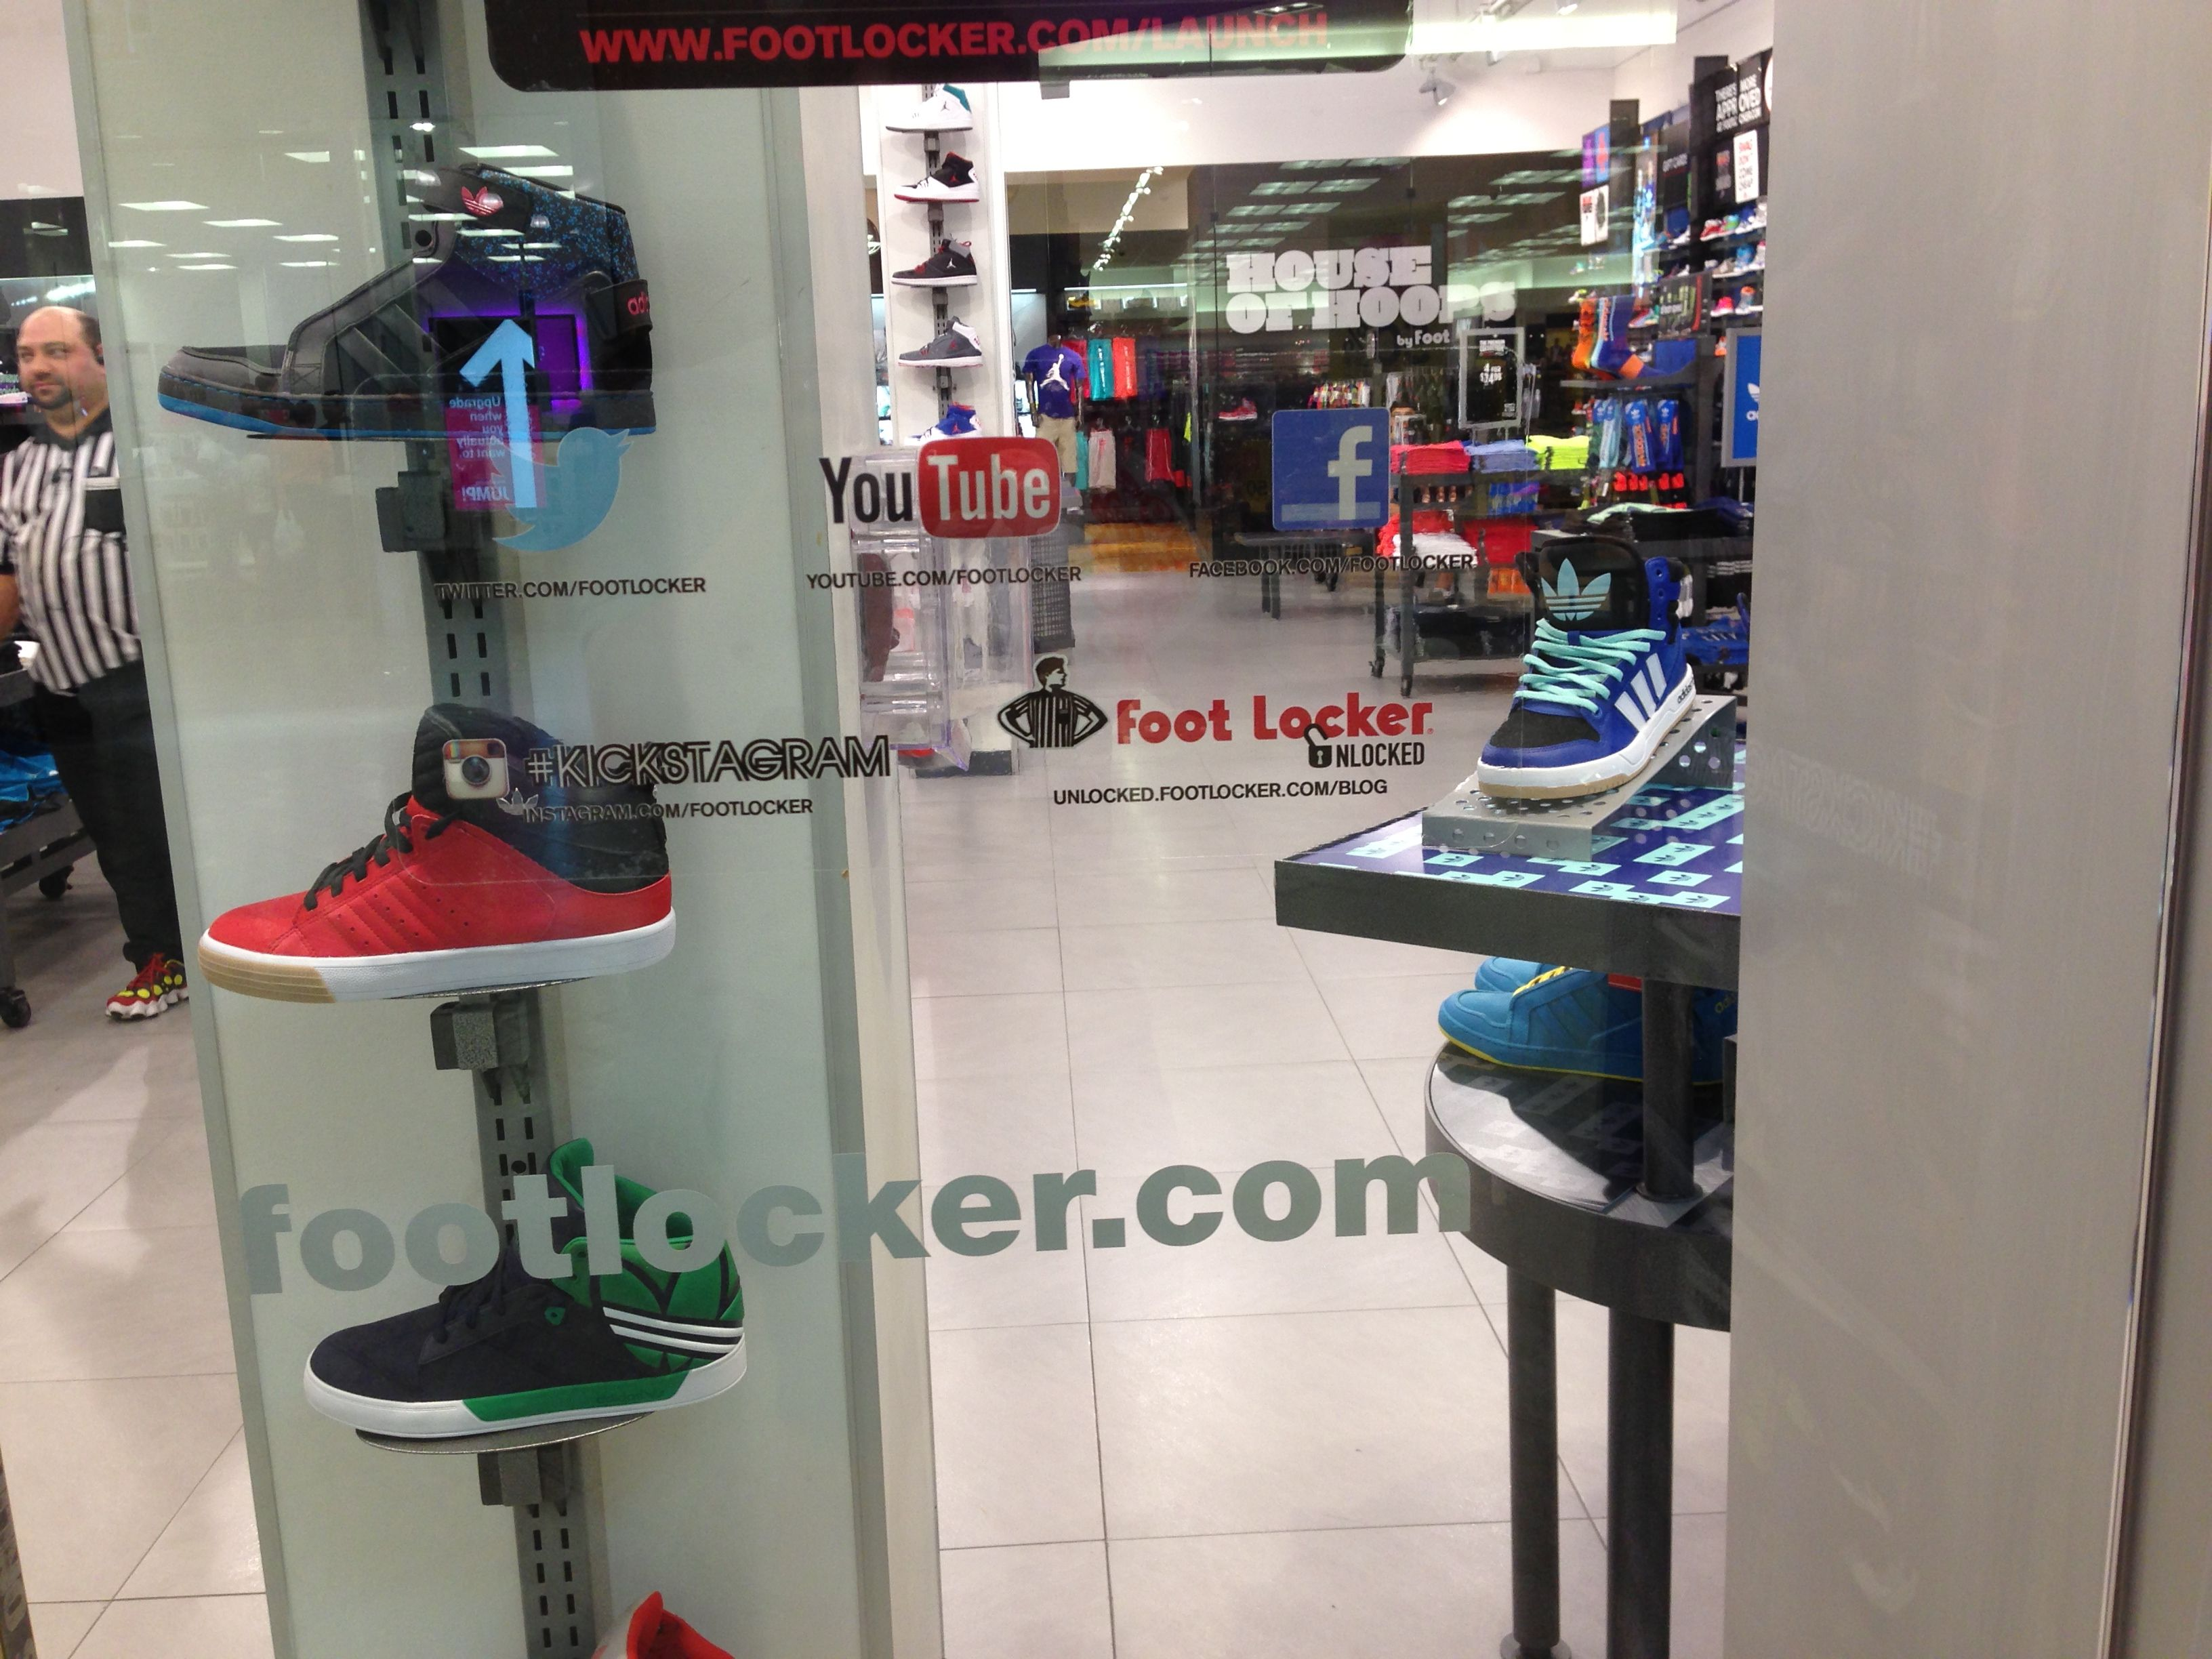 apply for a job at foot locker during the nba lockout foot foot locker >> mall store window >> captured 7 2013 in holyoke